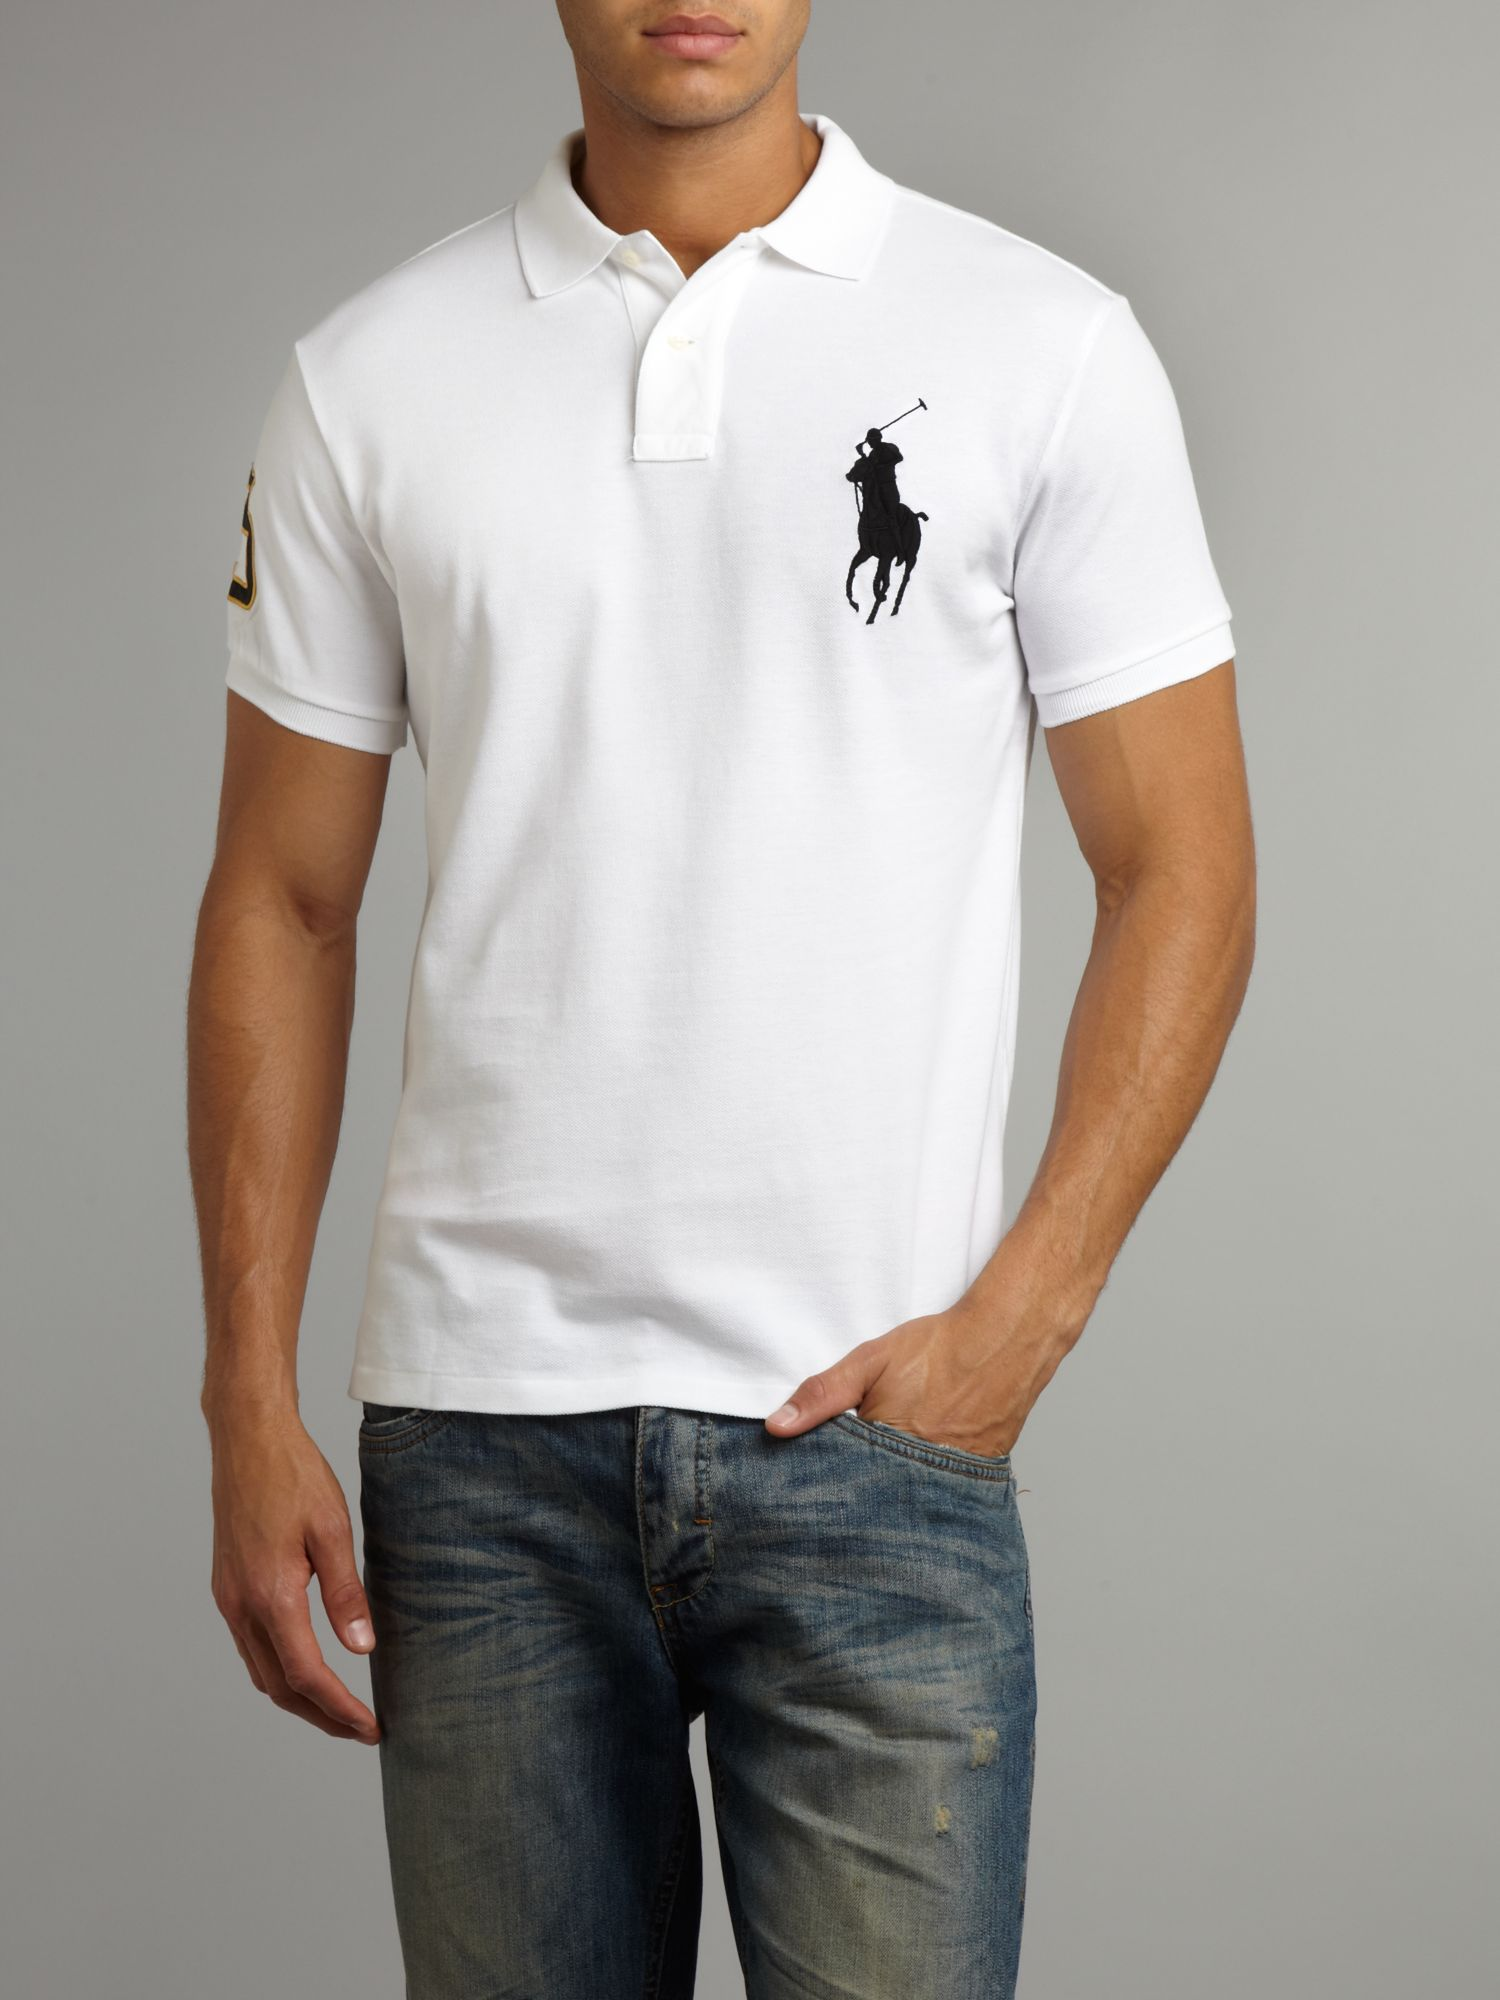 Black and white ralph lauren polo big pony ralph lauren for Big and tall custom polo shirts